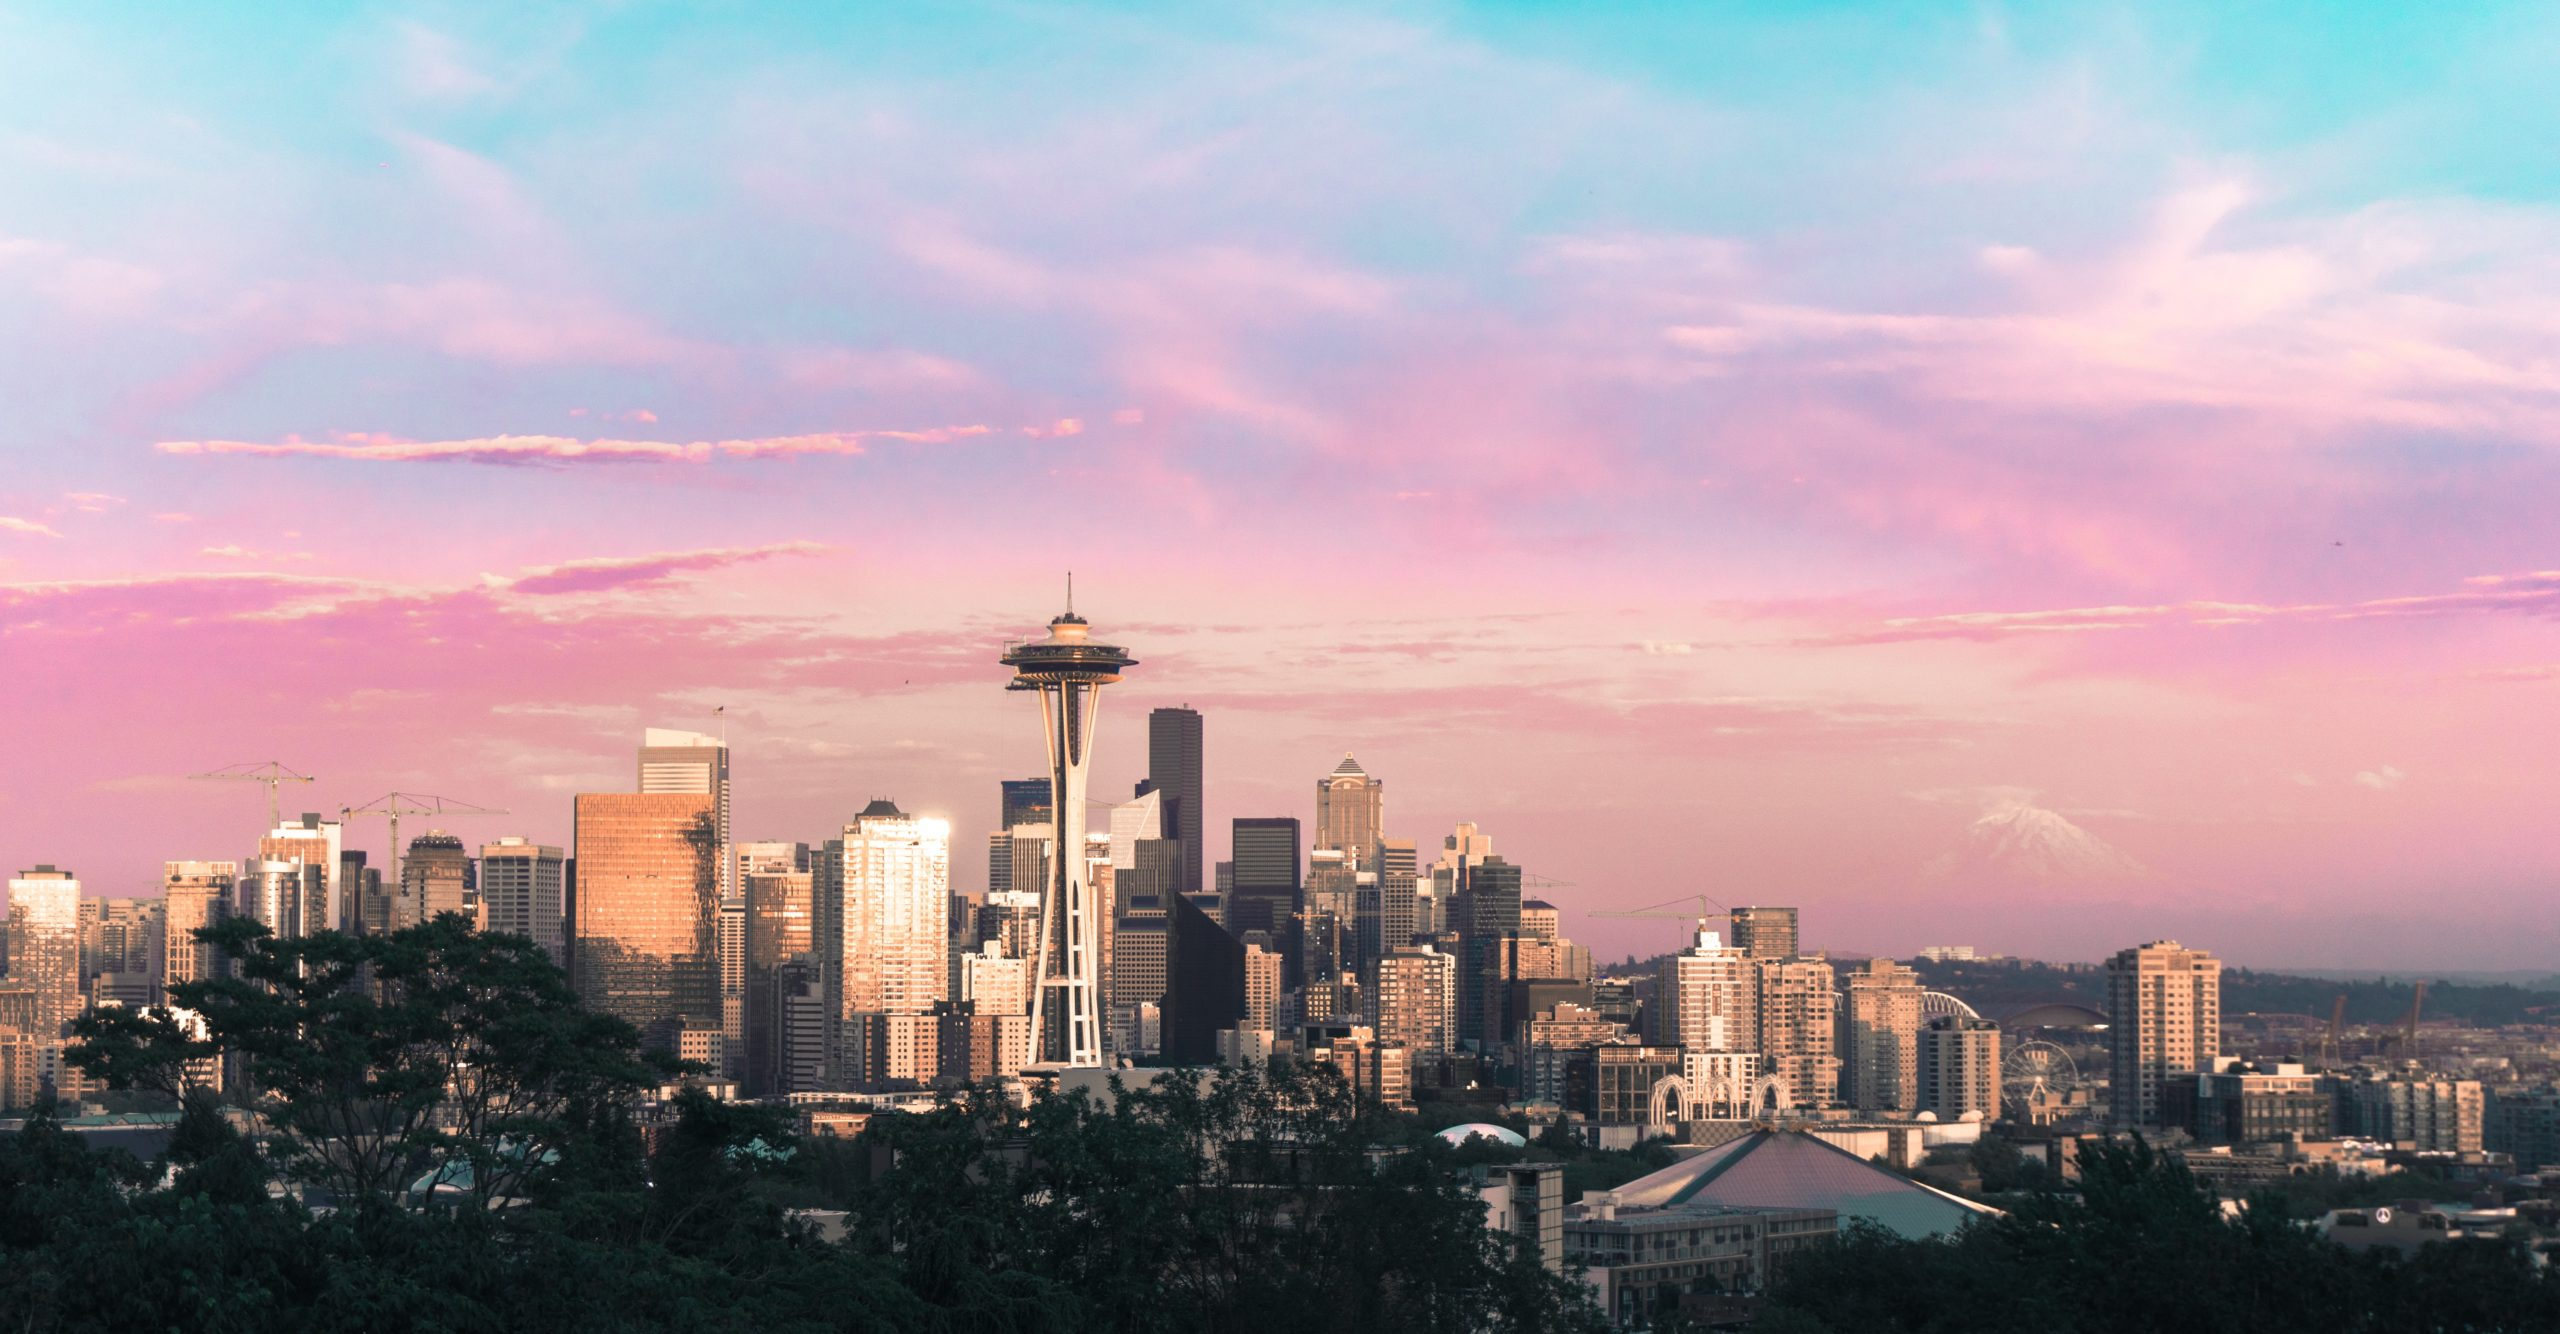 Skyline of Seattle, Washington with Denali in the background and the Space Needle in the foreground.